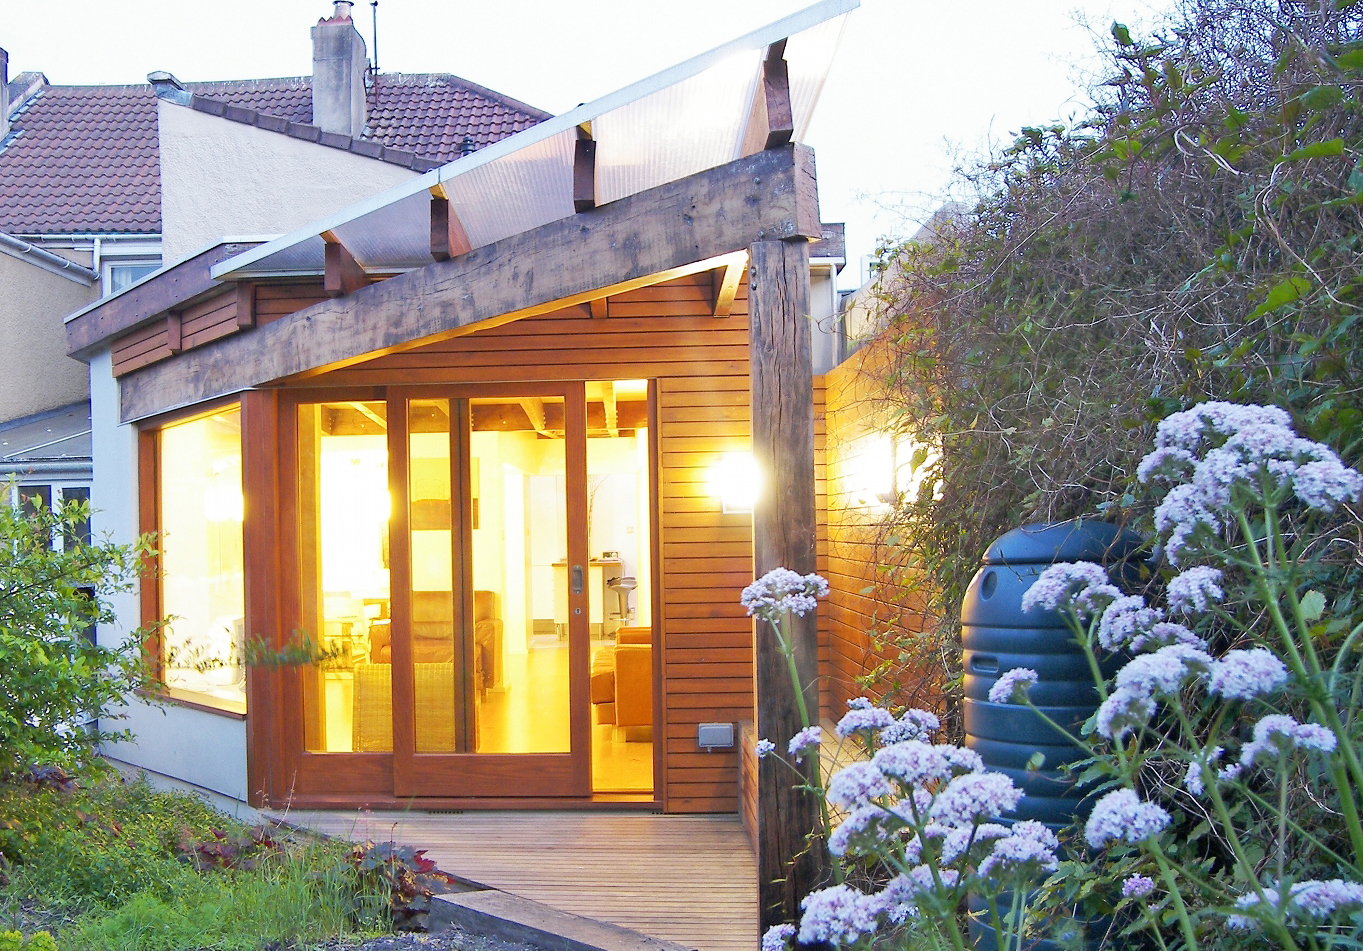 01_Extension House in Southville, Bristol by DHVA